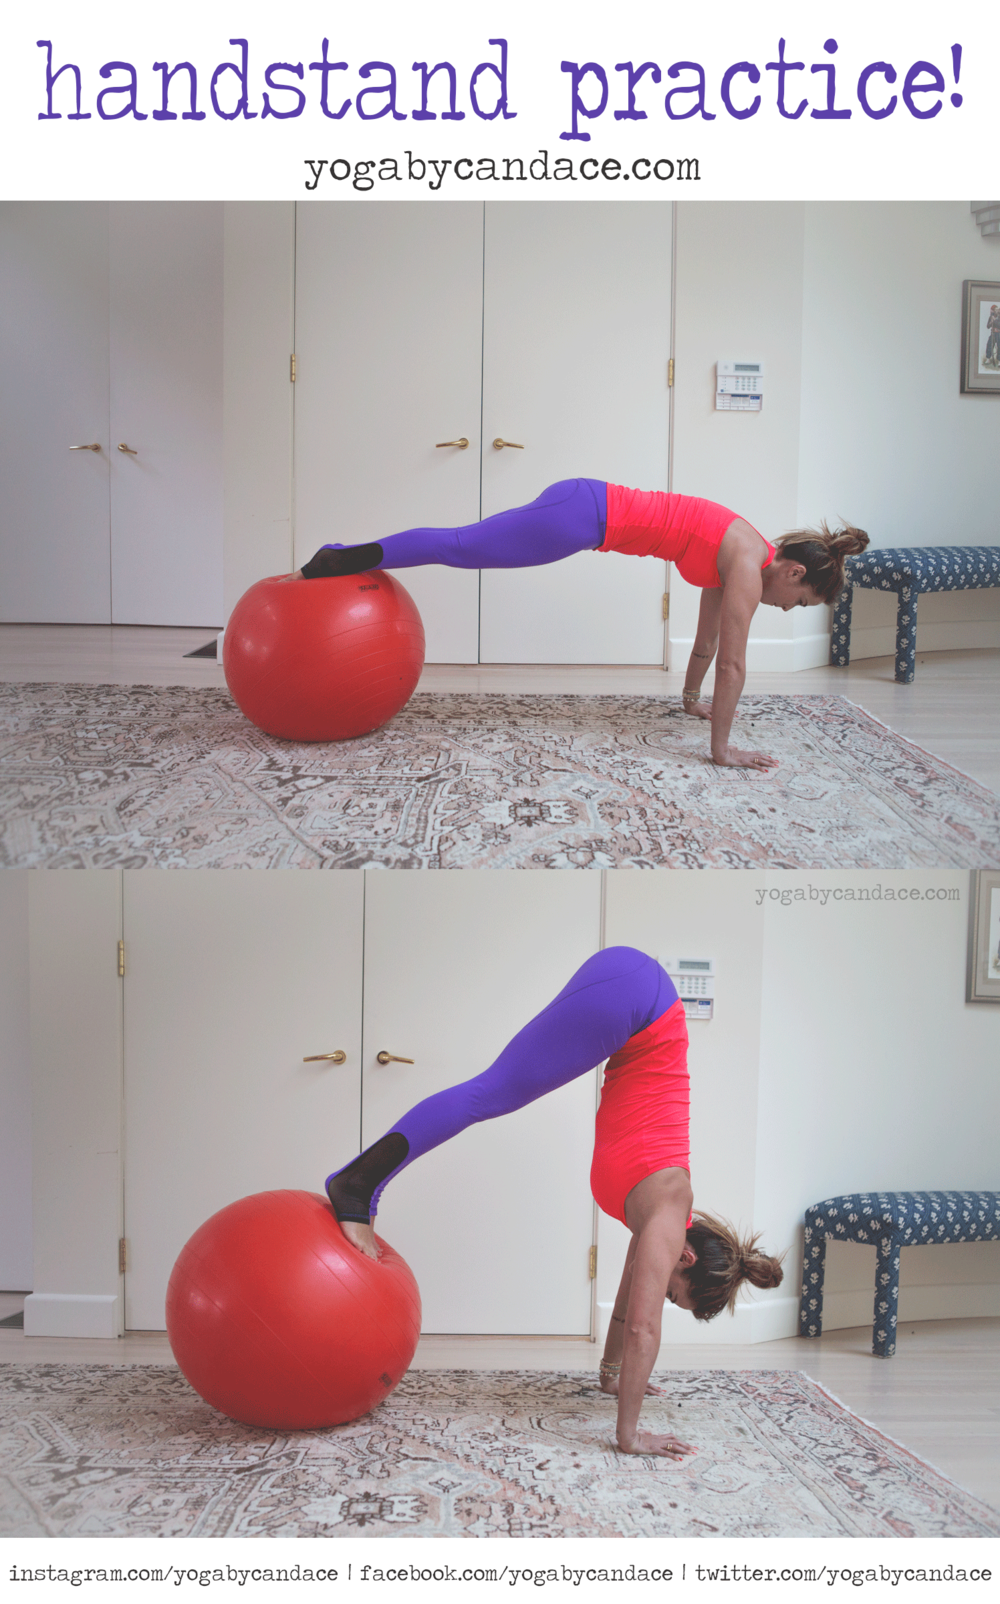 Wearing:  nina b roze pants , sweaty betty tank. Using:  stability ball  .